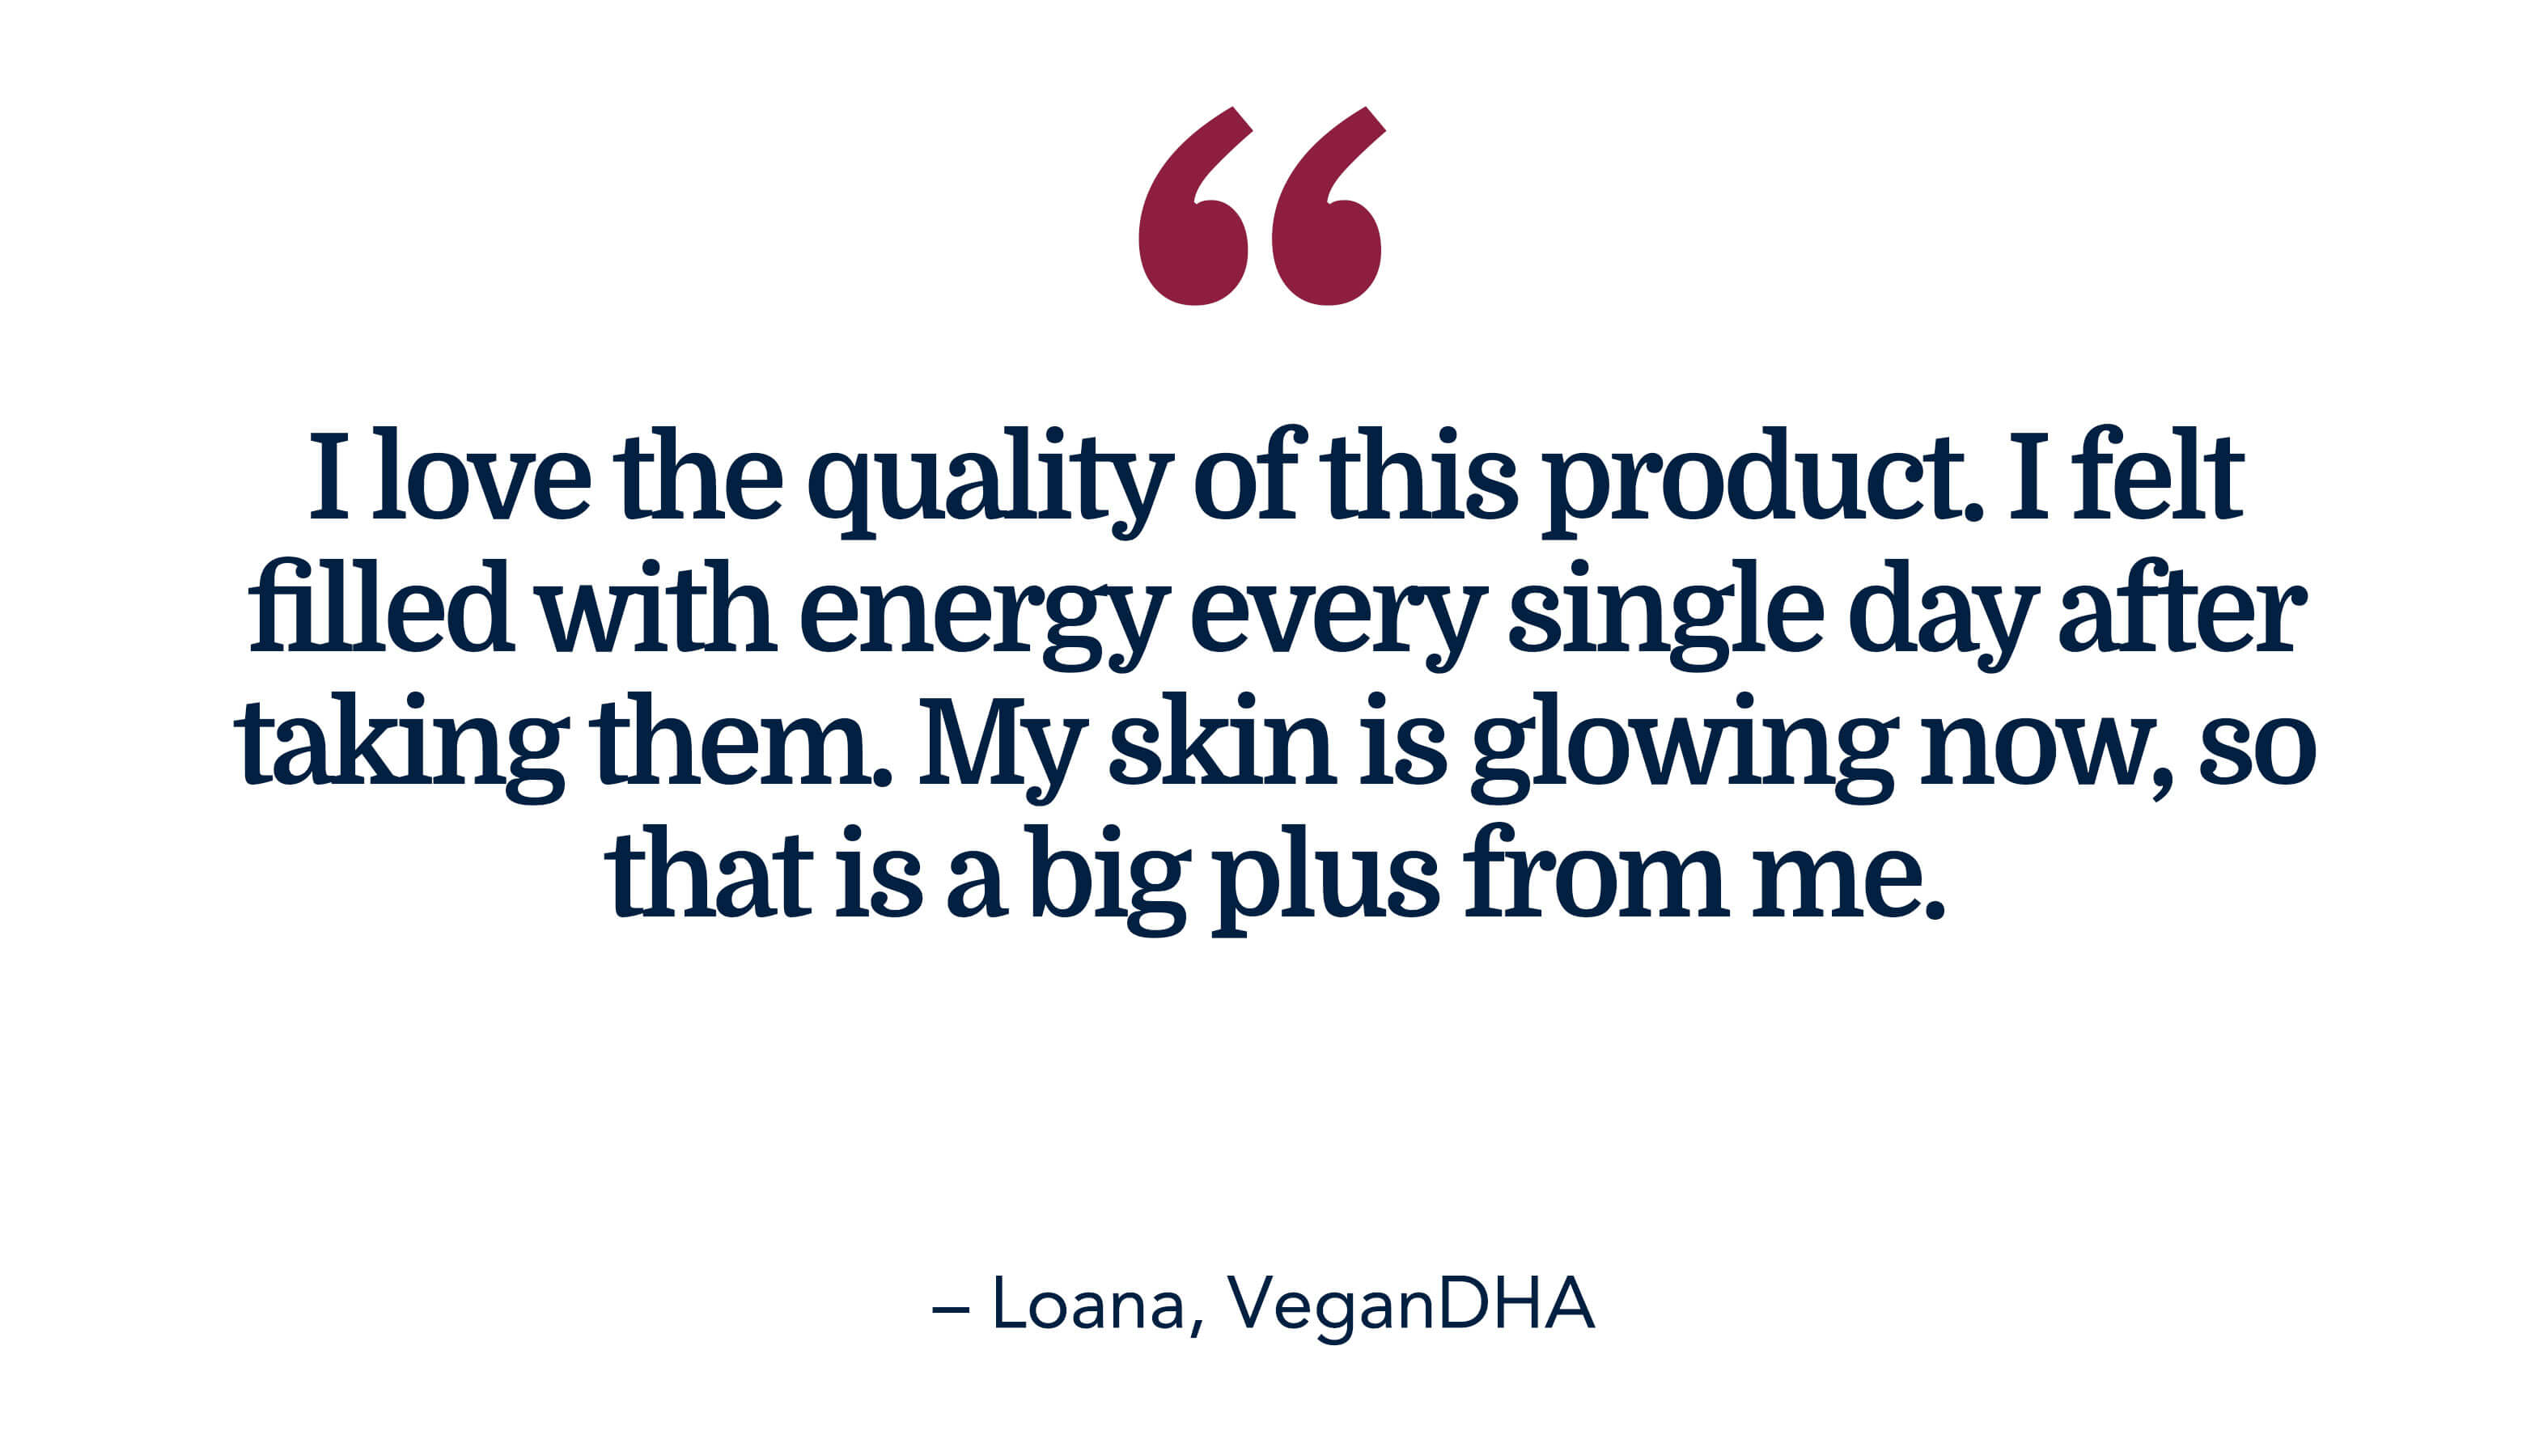 I love the quality of this Omega-3 product. I felt filled with energy every single day after taking them. My skin is glowing now, so that is a big plus from me. - Loana, Vegan DHA